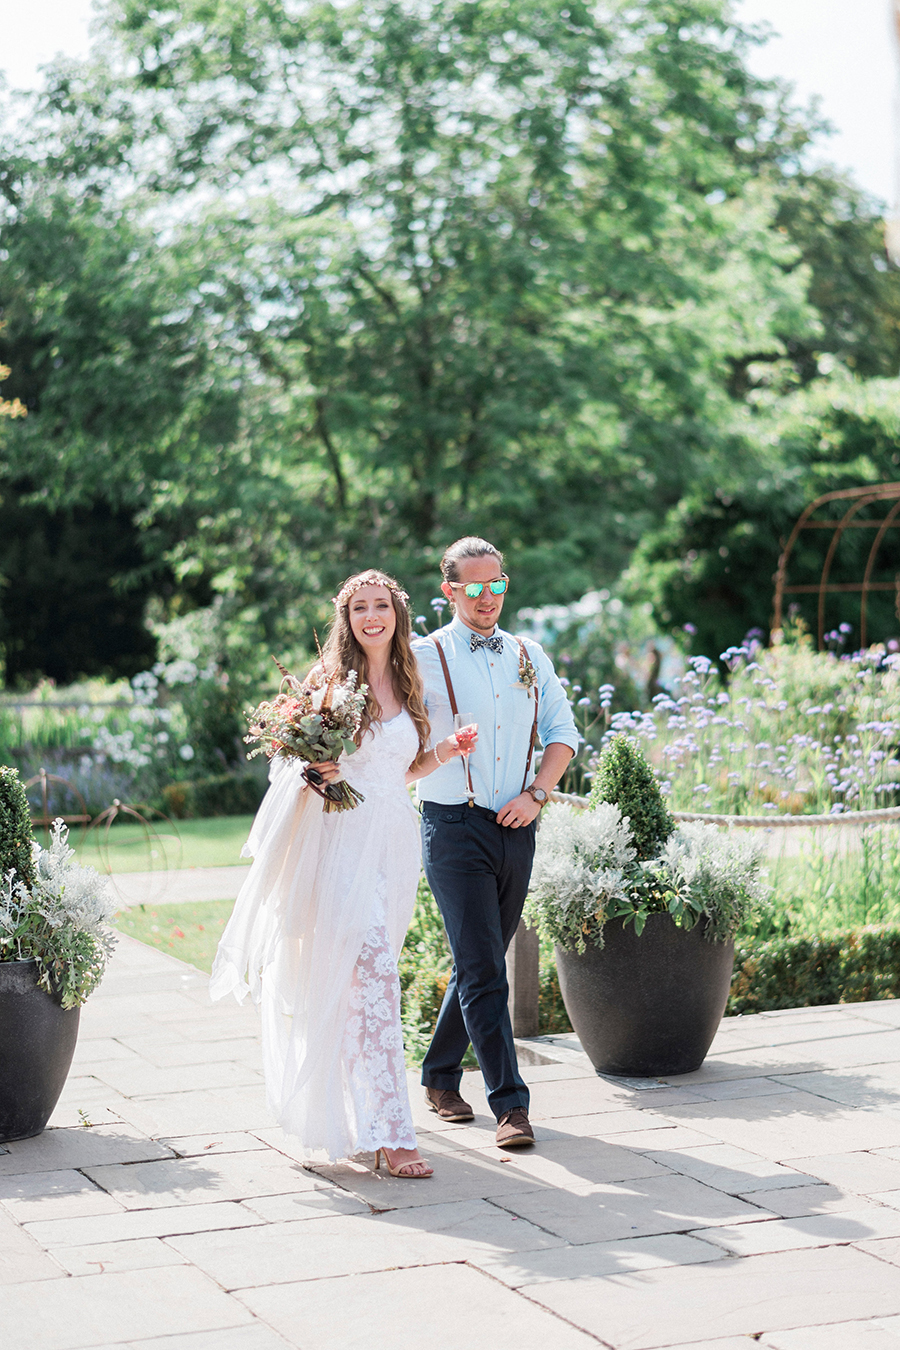 Dreamy boho wedding at Houchins Farm with images by Kathryn Hopkins Photography (23)